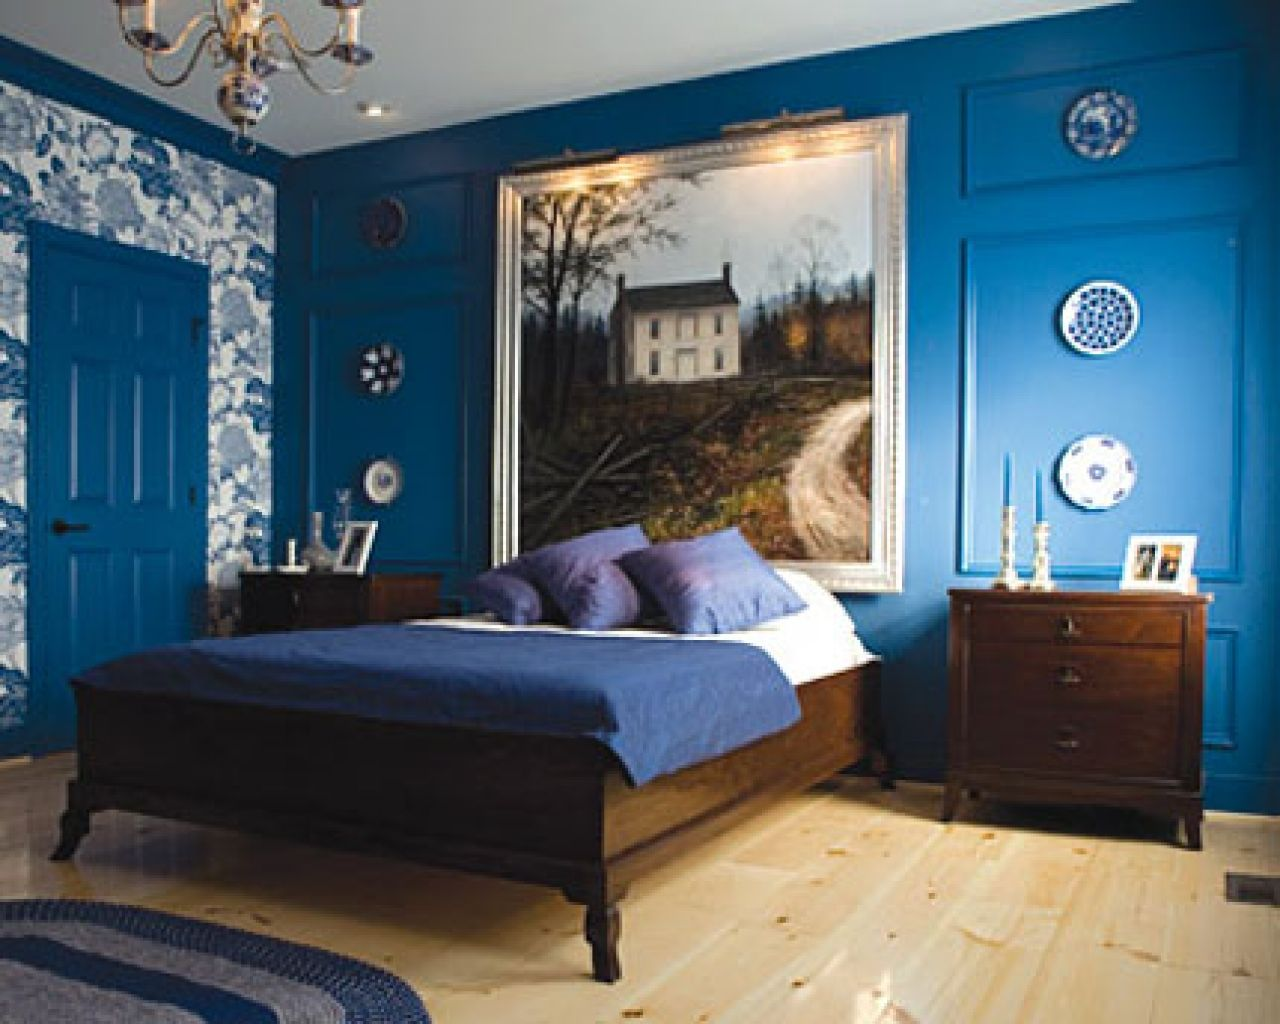 Bedroom paint ideas blue and brown - Bedroom Painting Design Ideas Pretty Natural Bedroom Paint Ideas Cute Blue Wall Idp Interior Design